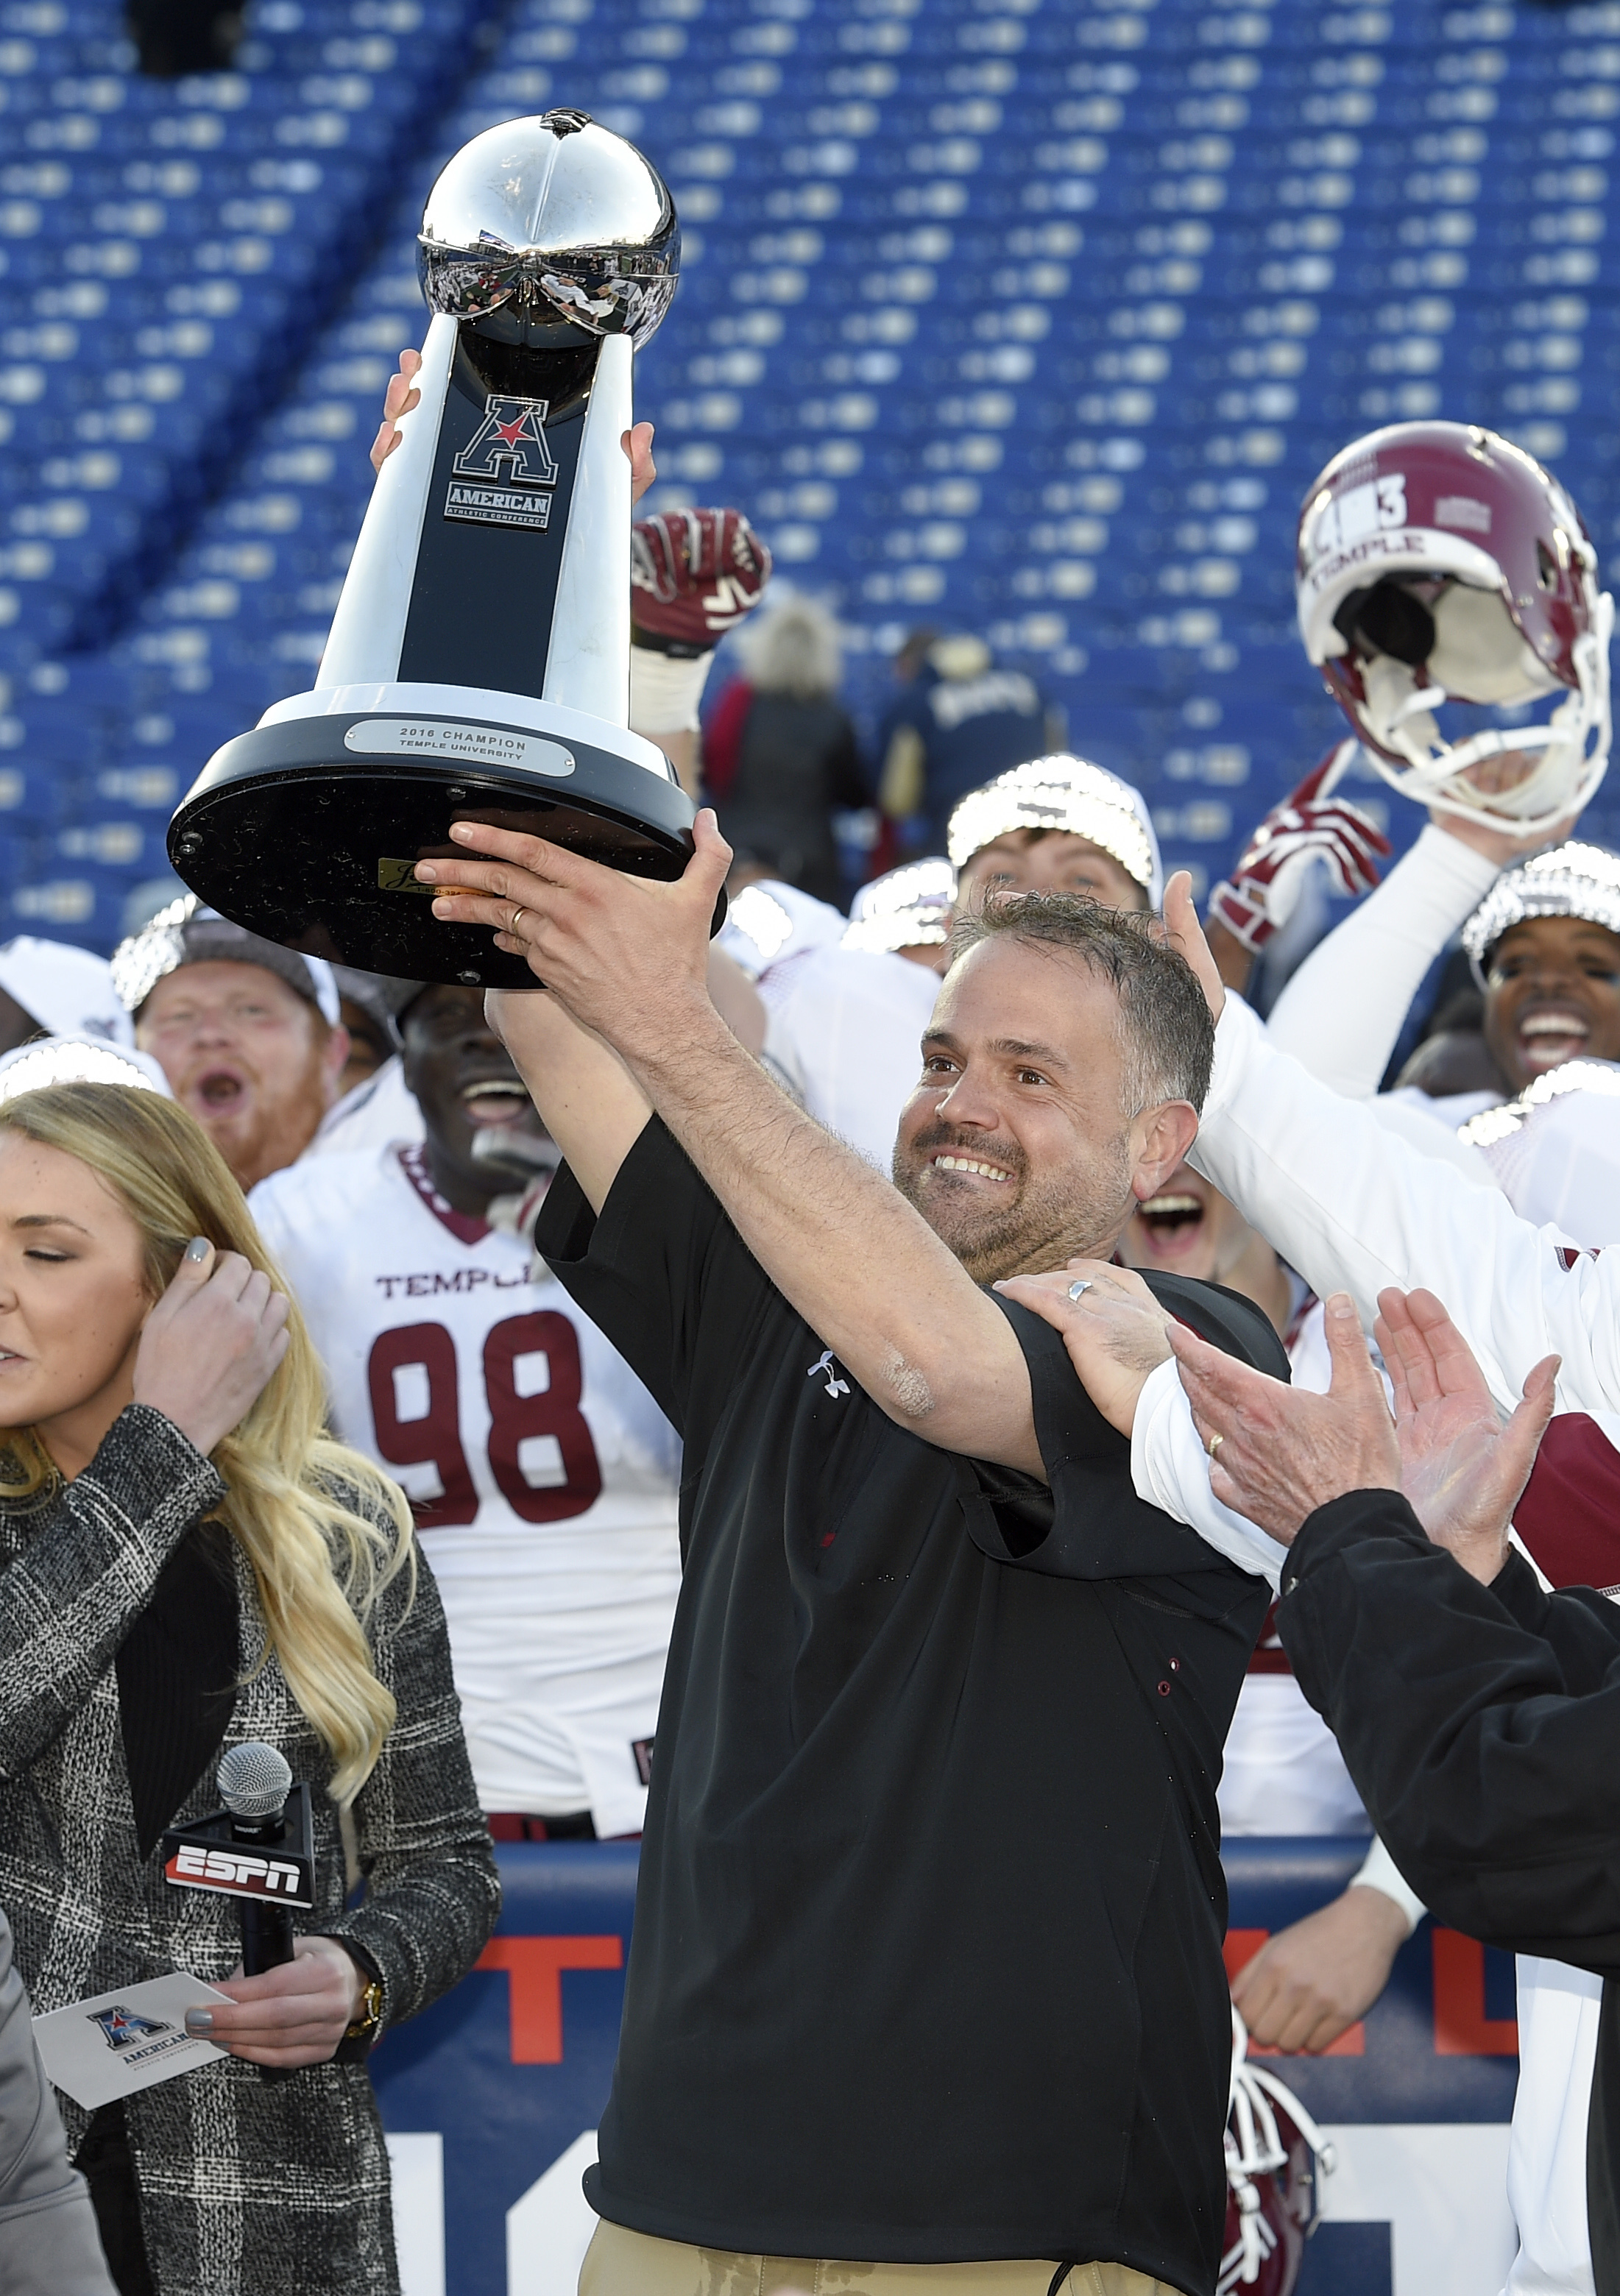 Temple head coach Matt Rhule poses with the trophy after after they defeated Navy 34-10 in the American Athletic Conference championship NCAA college football game, Saturday, Dec. 3, 2016, in Annapolis, Md.AP Photo/Nick Wass)